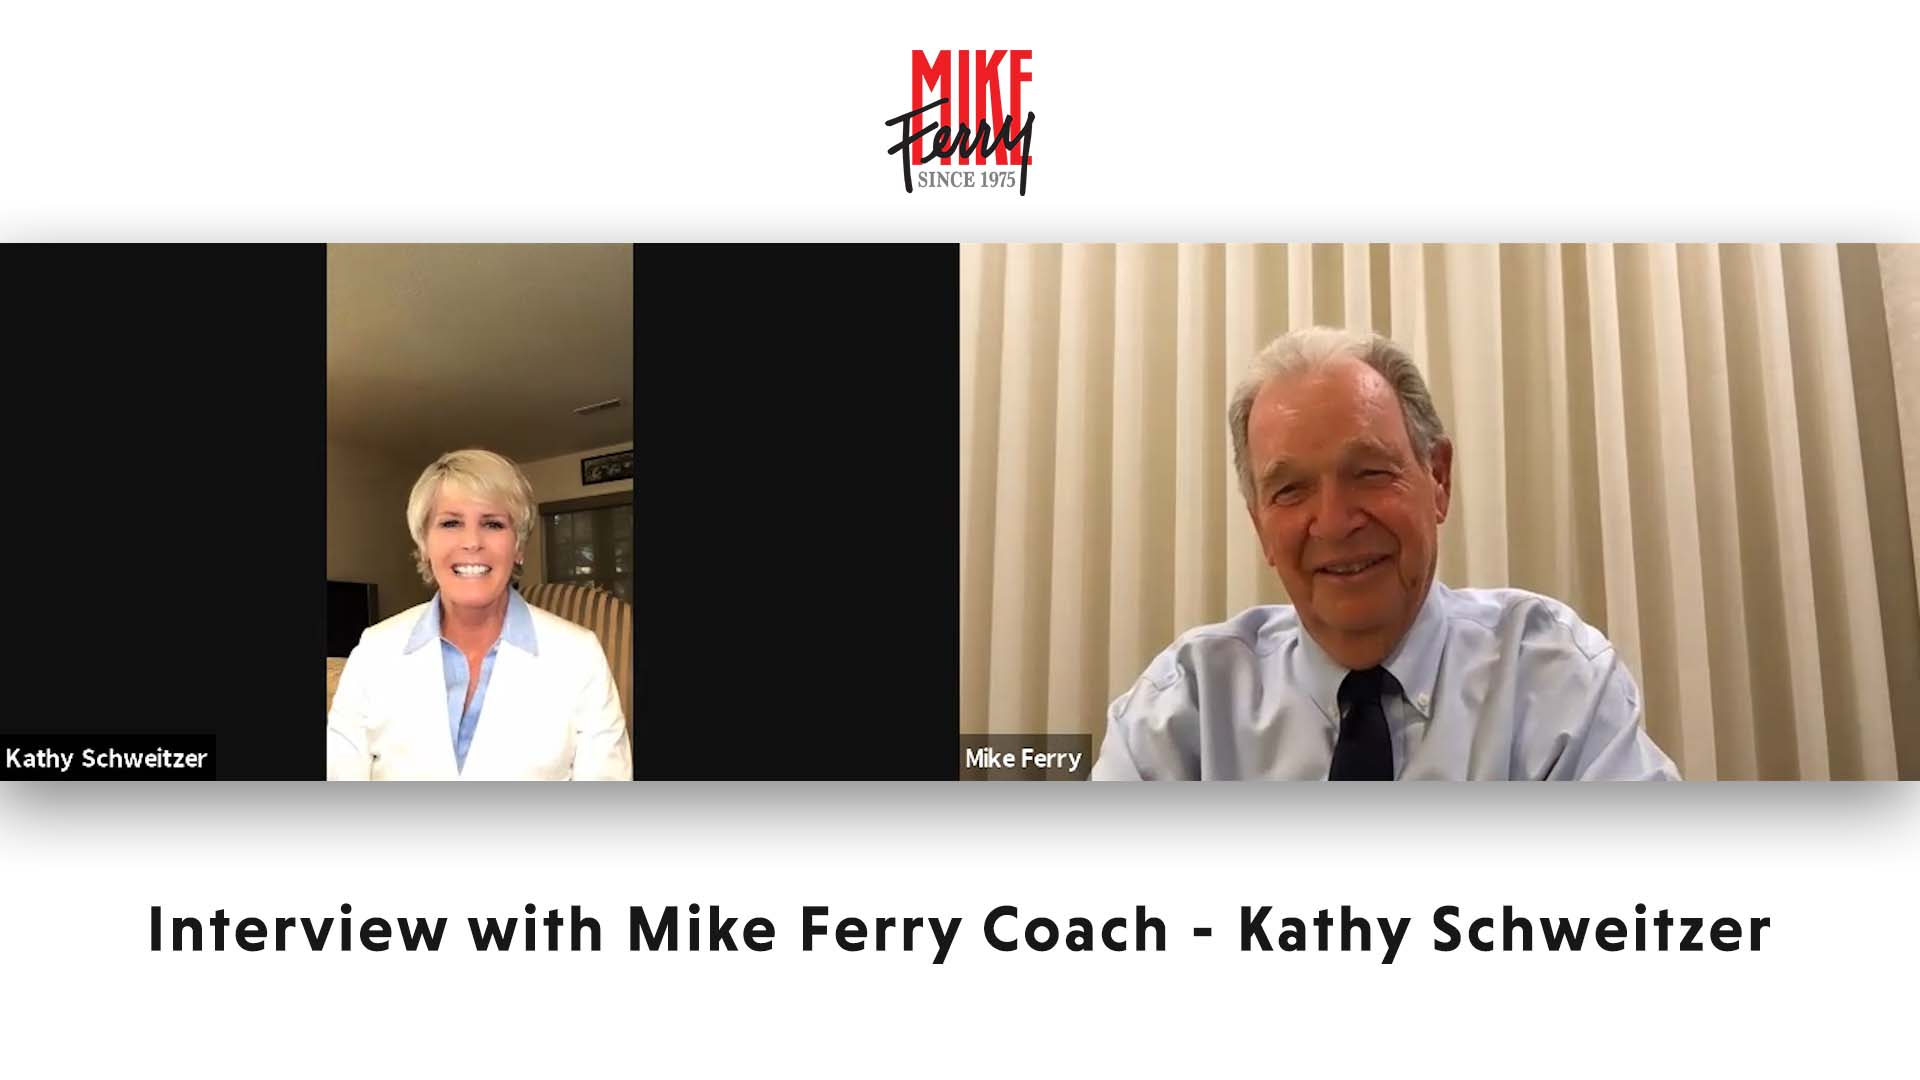 Interview with Mike Ferry Coach – Kathy Schweitzer